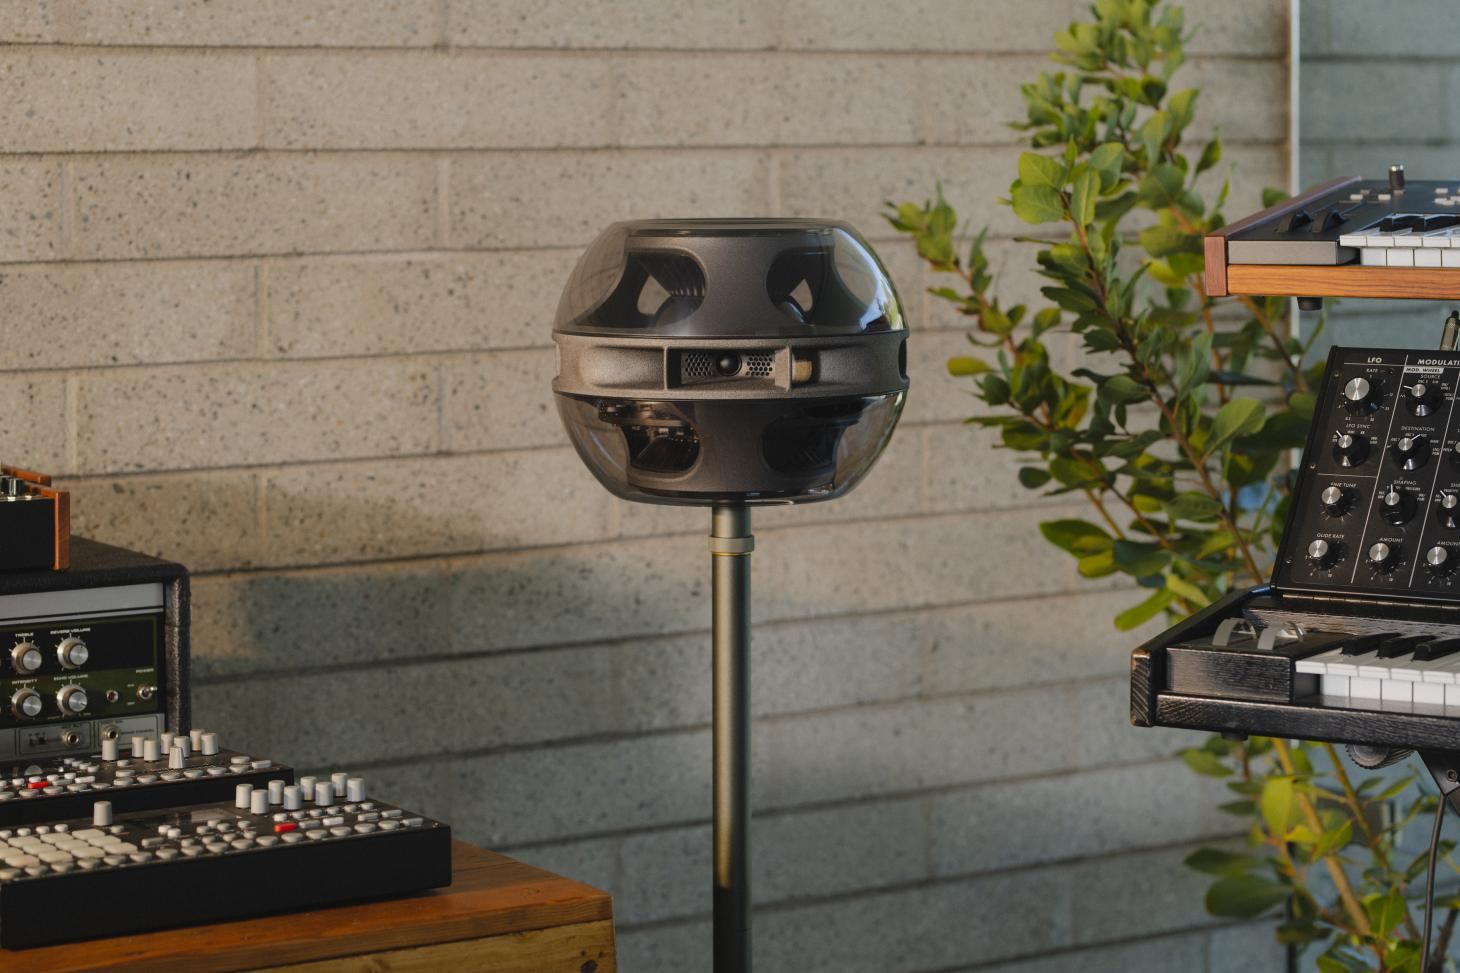 Syng's Cell Alpha Speaker is designed for any audio input